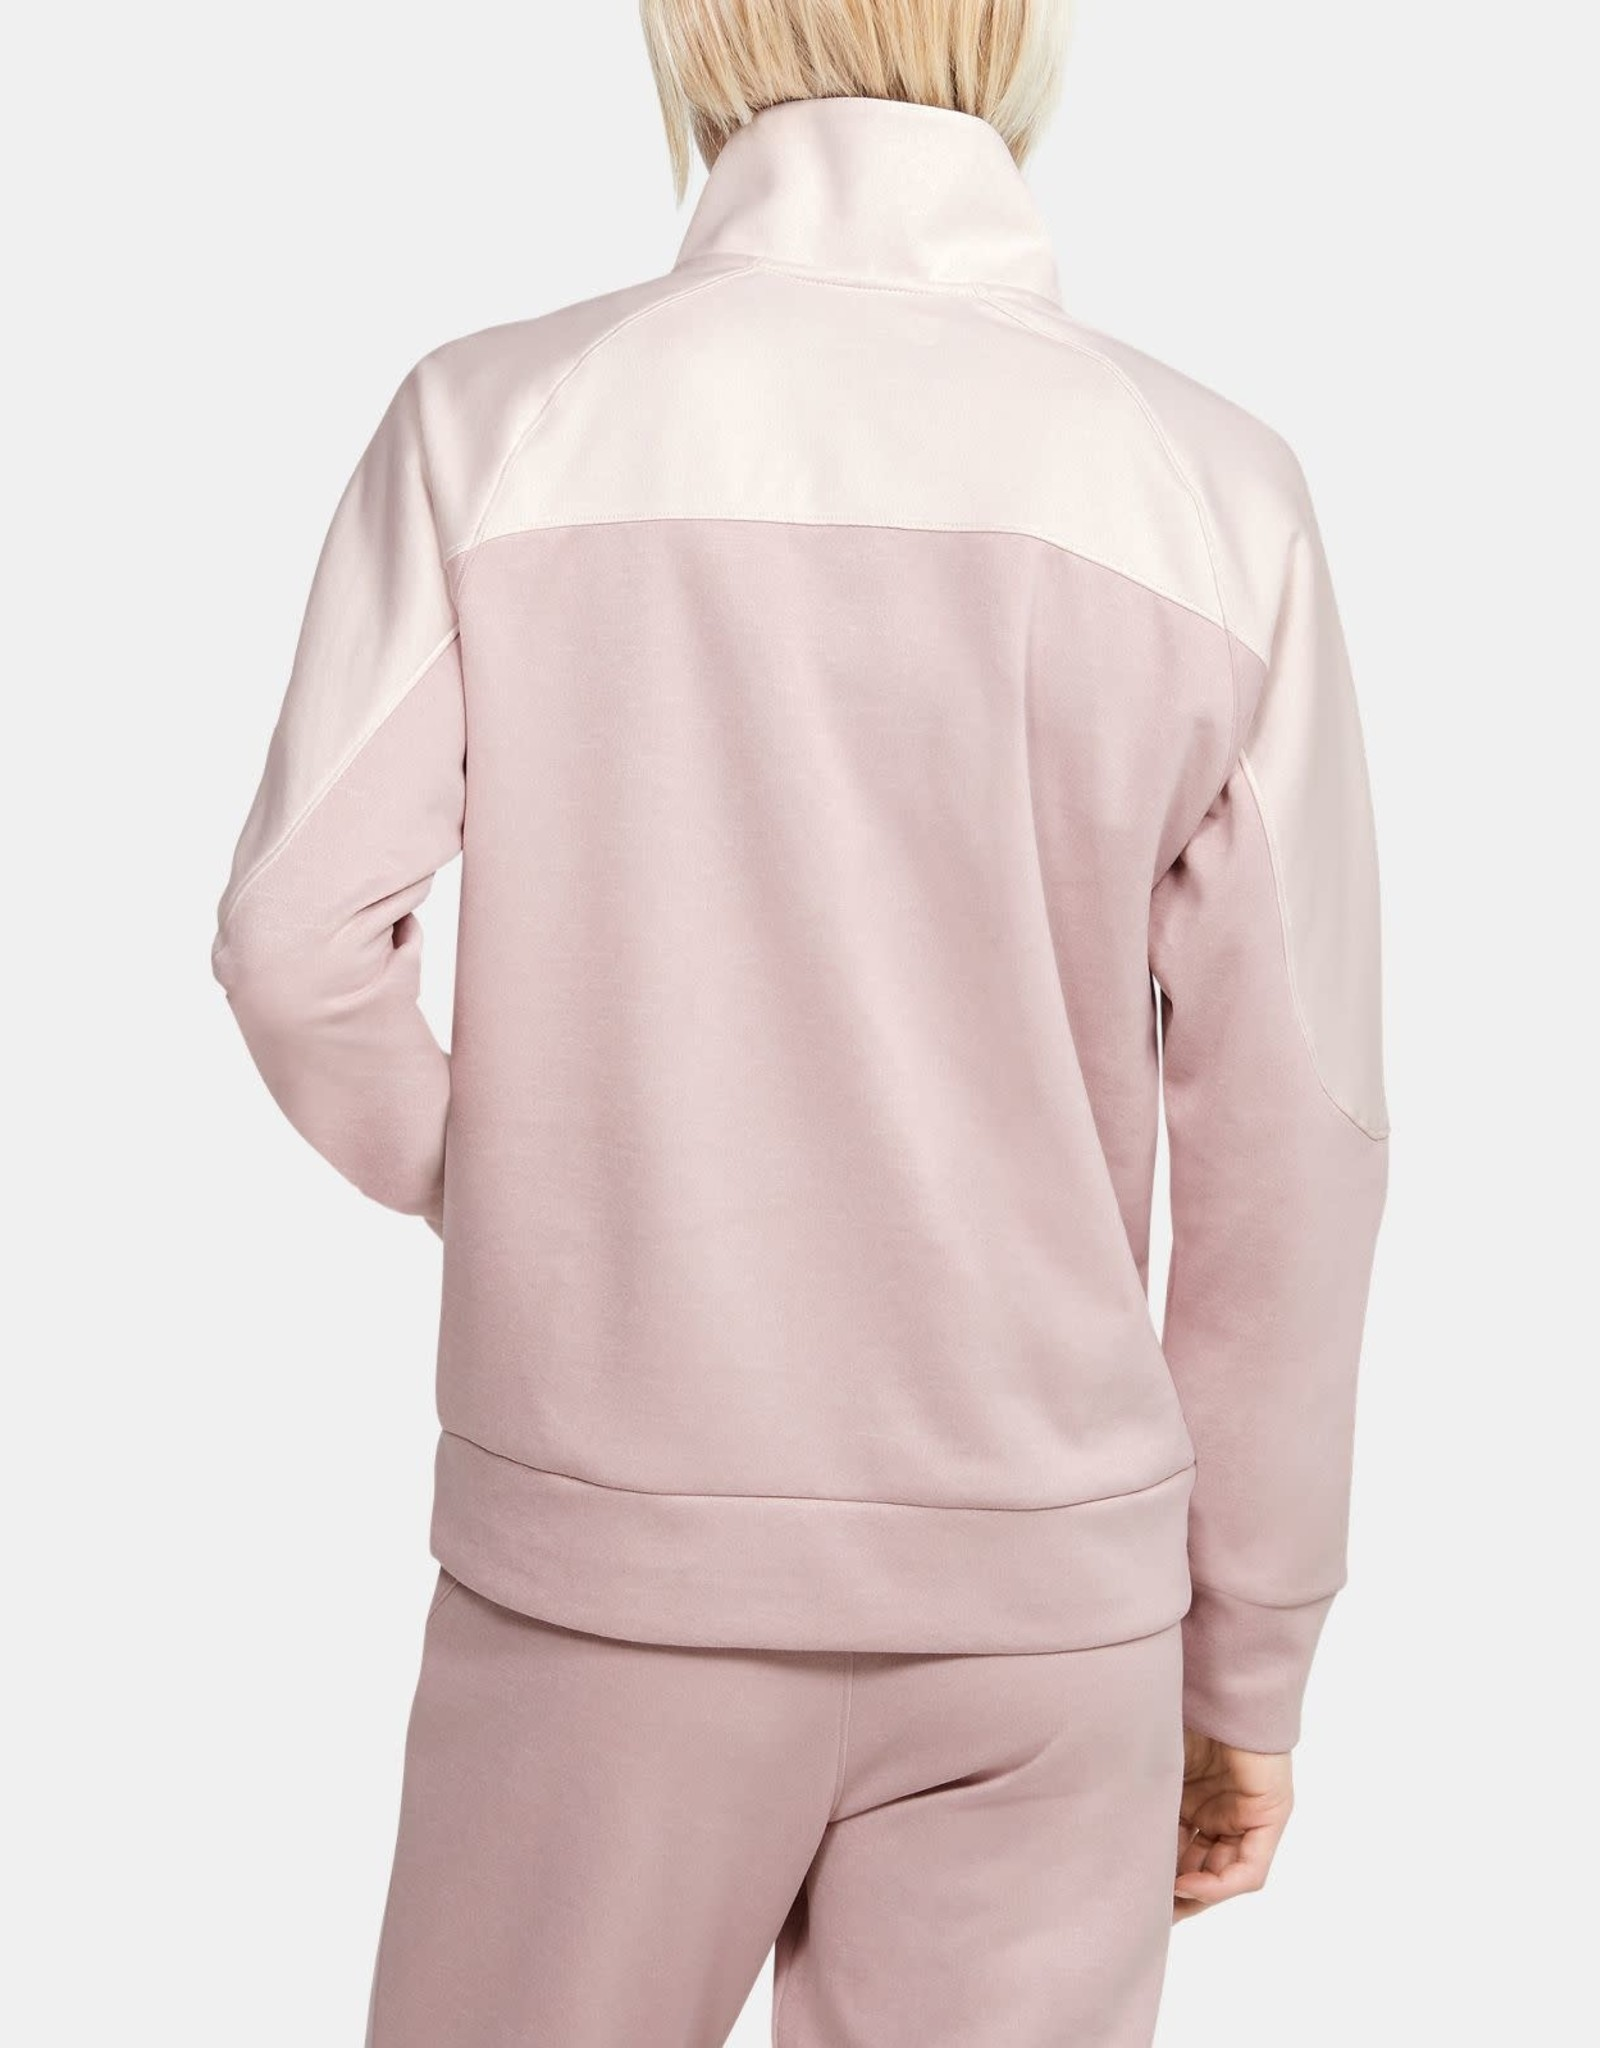 Under Armour Recover knit 1/2 zip - pink